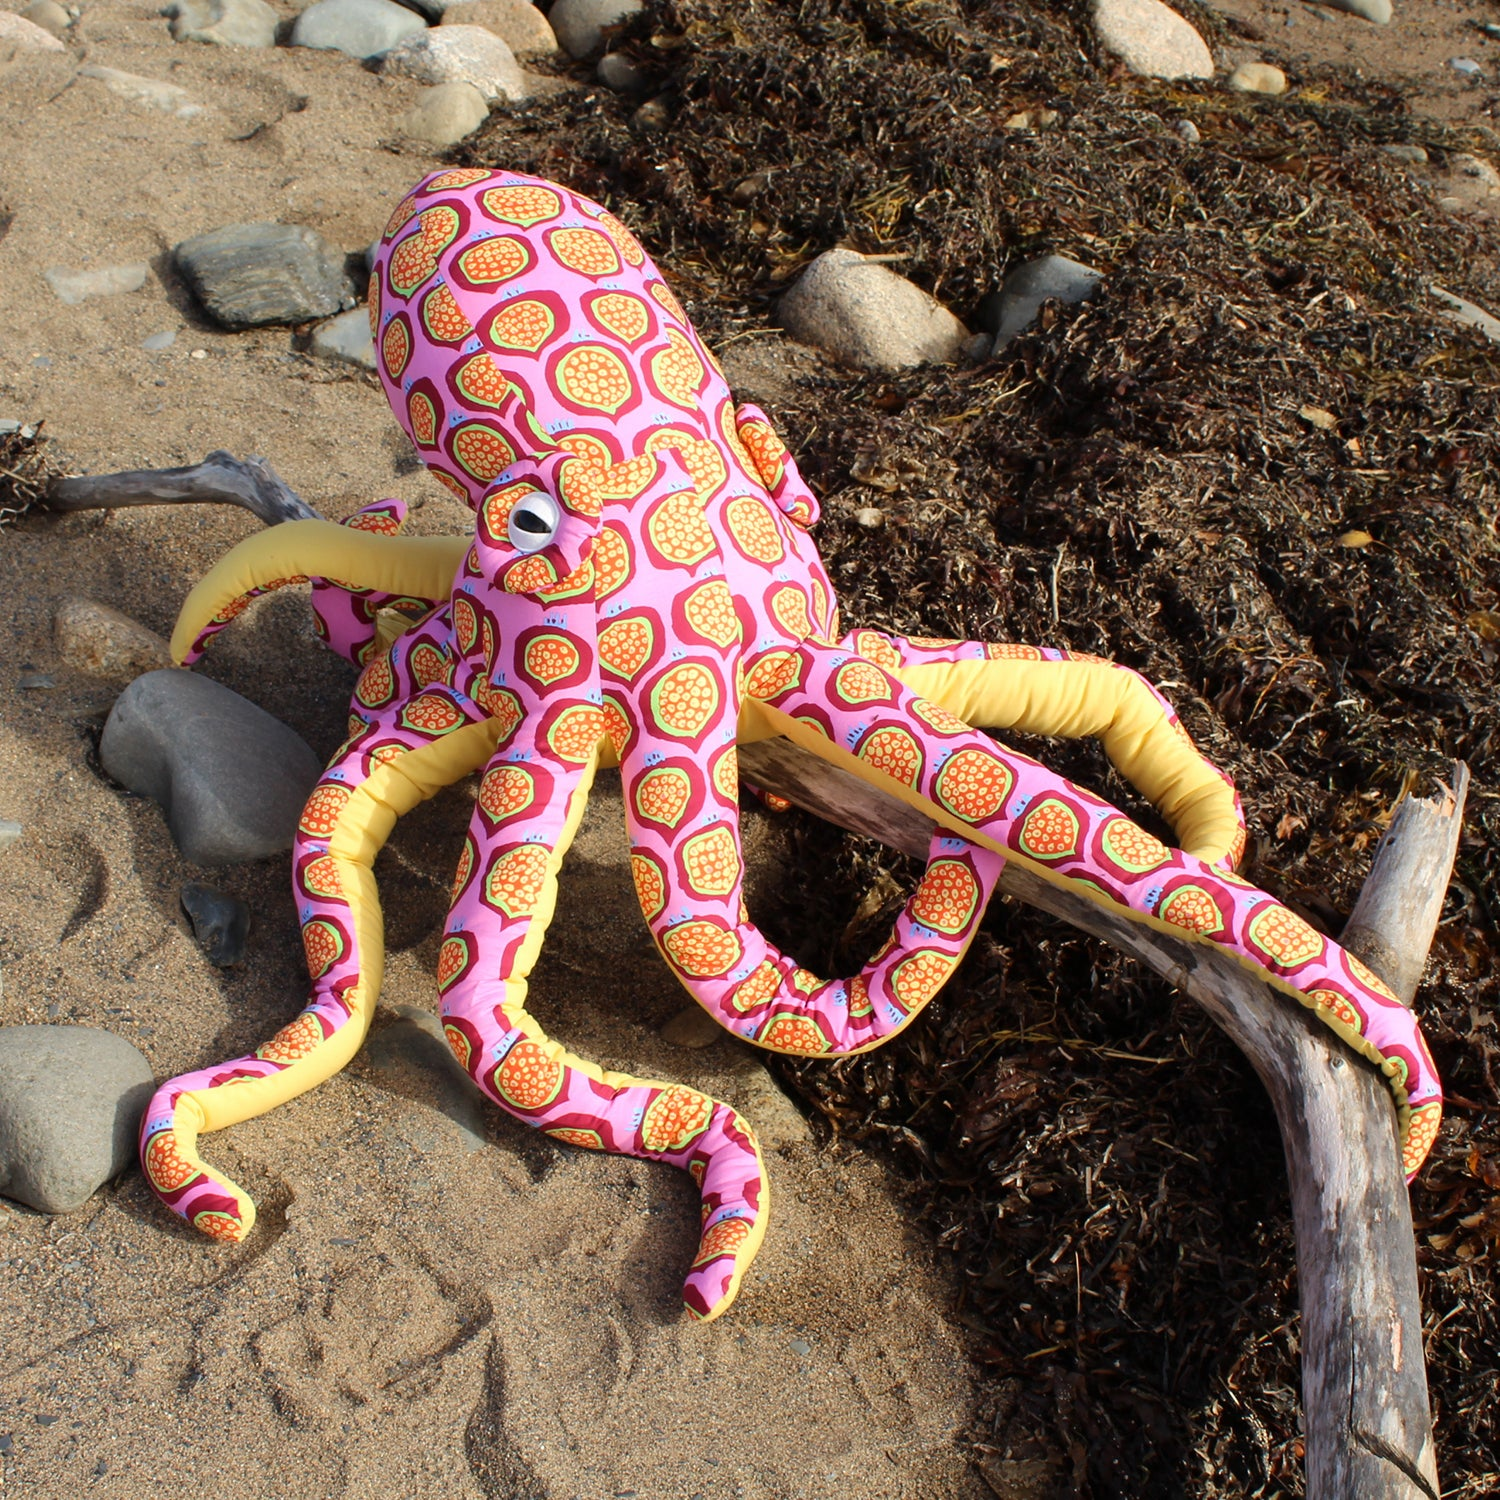 Giant Octopus Stuffed Animal Decor Soft Sculpture One of a Kind - Pomegranate Pink